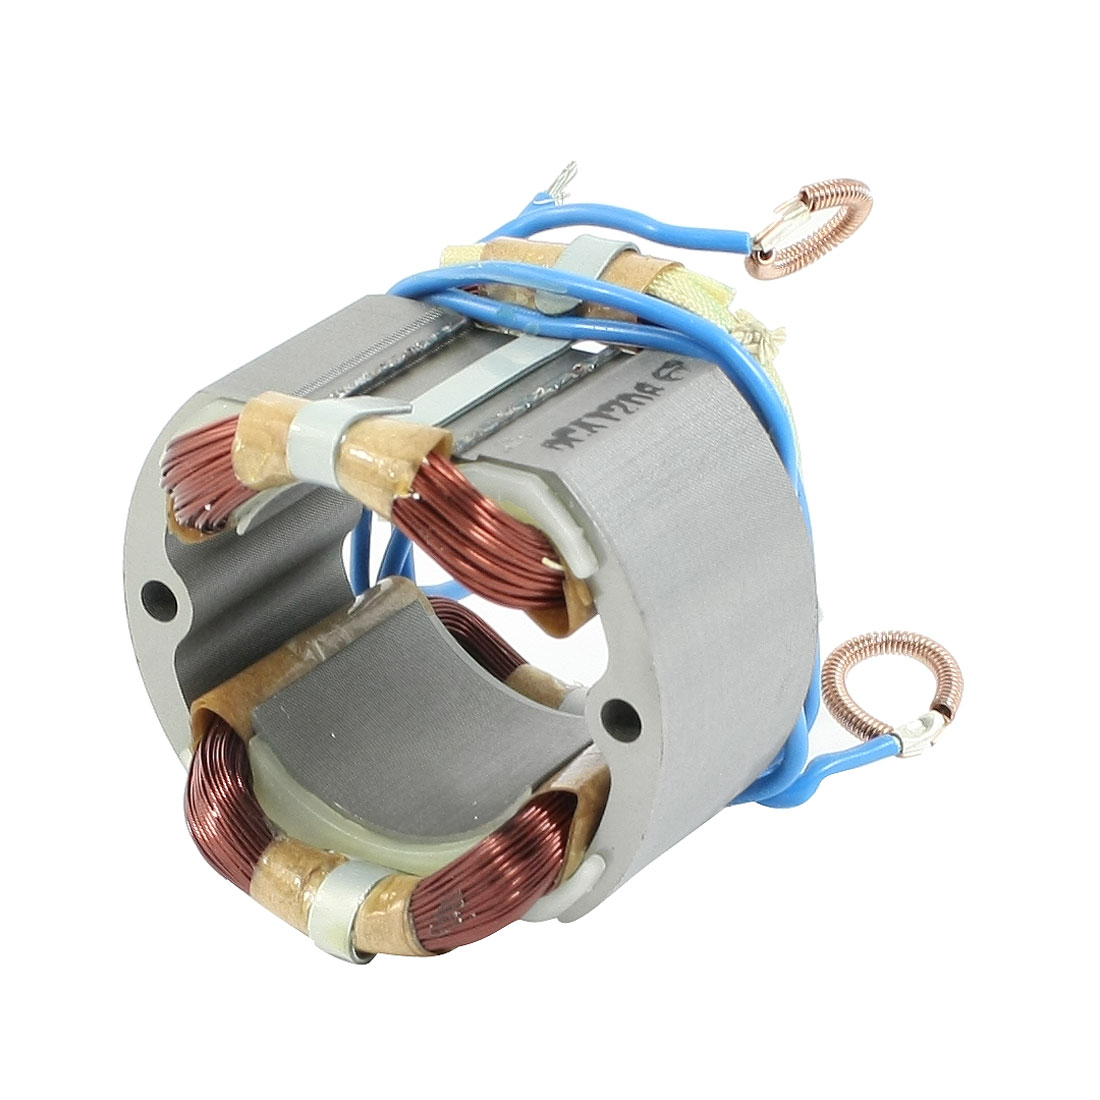 AC220V 50mm Rotor Core 4-Cable Motor Stator for Makita 3601B Electric Router